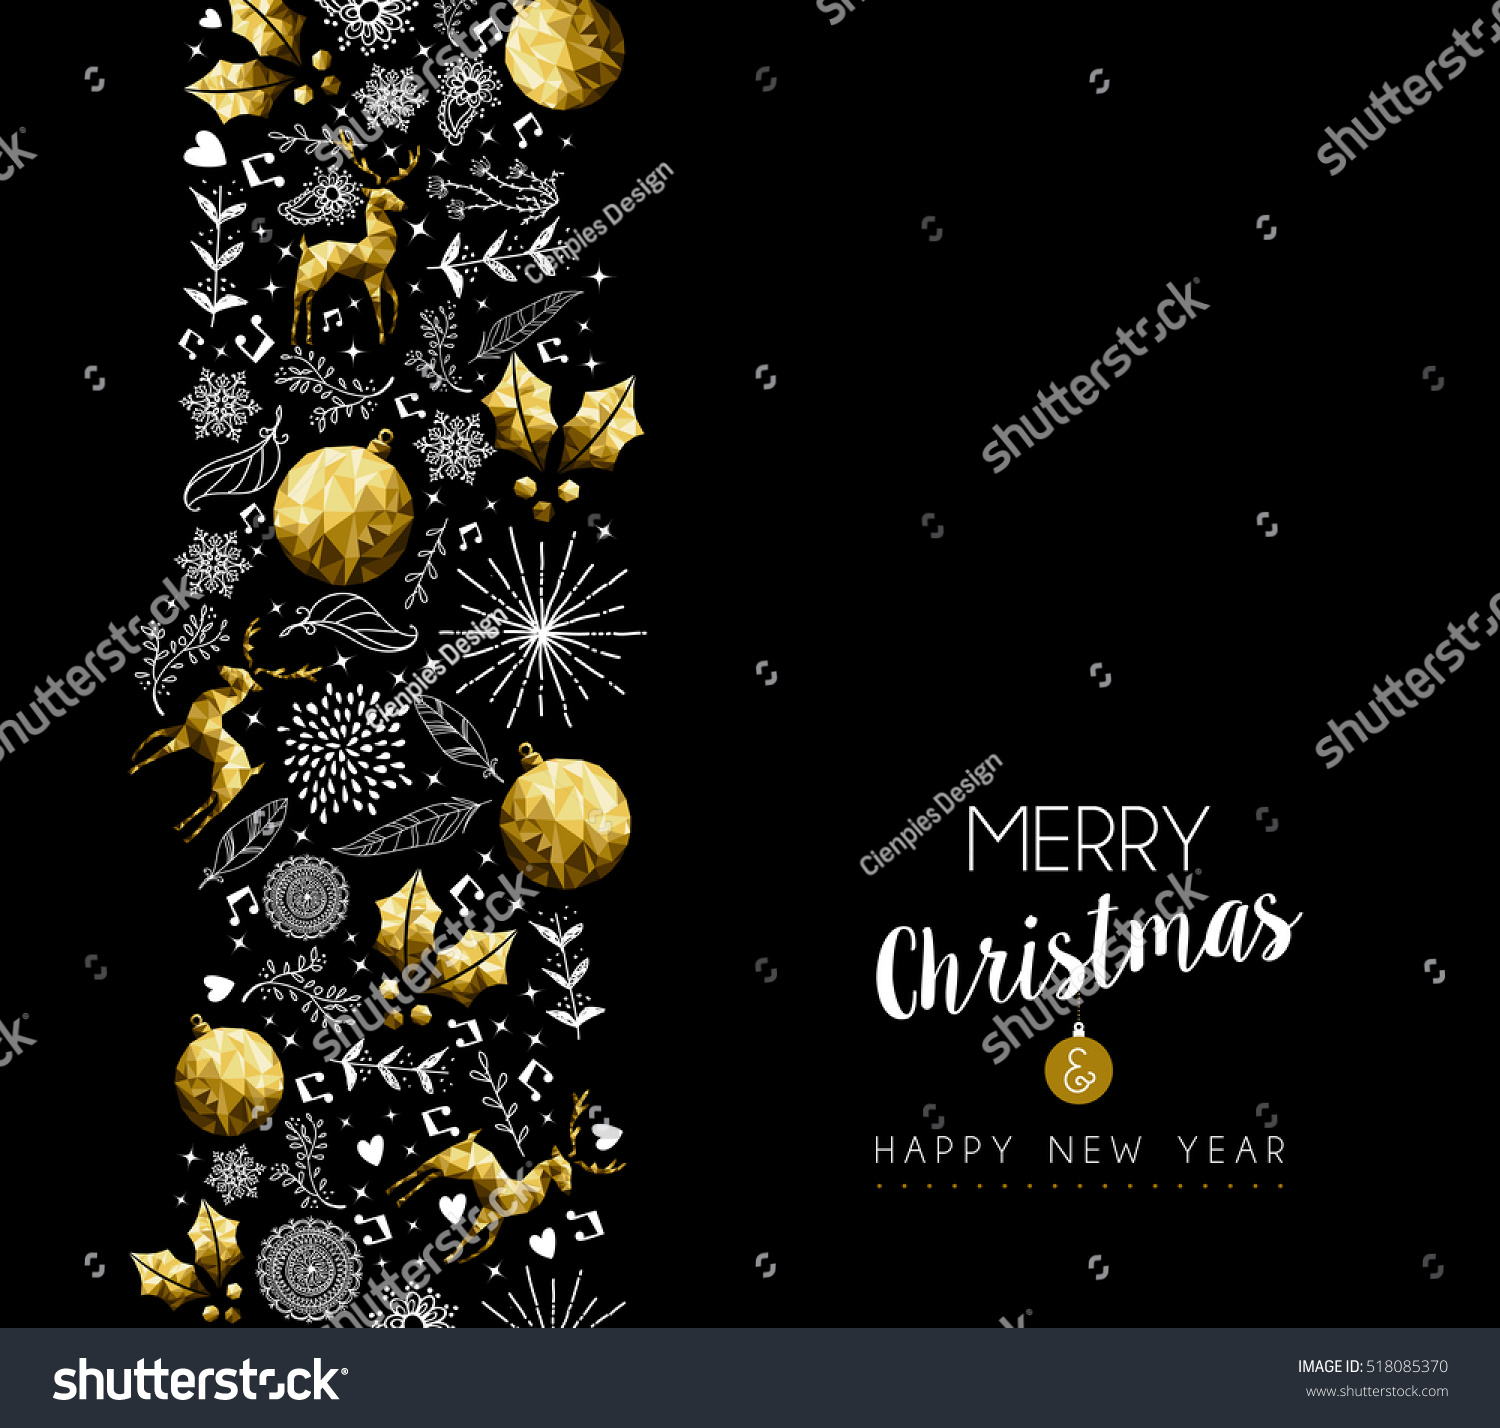 merry christmas happy new year gold low poly pattern decoration with deer nature and holiday